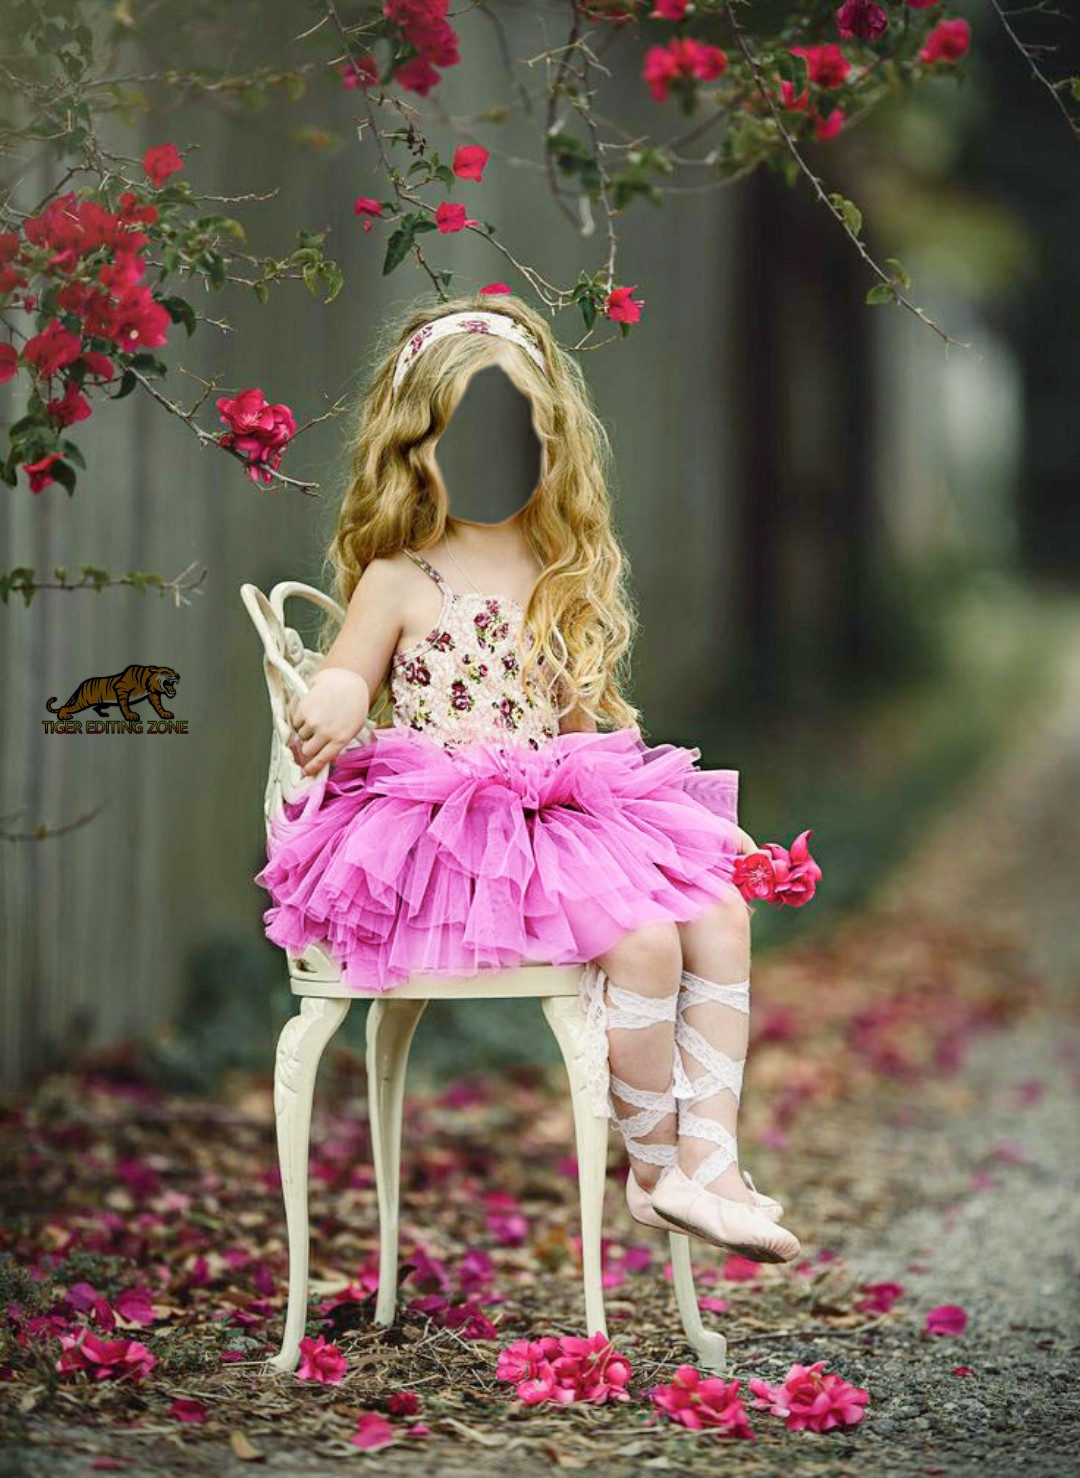 Background Images For Baby Photo Editing Child Background Images Hd By Tiger Editing Zone Medium